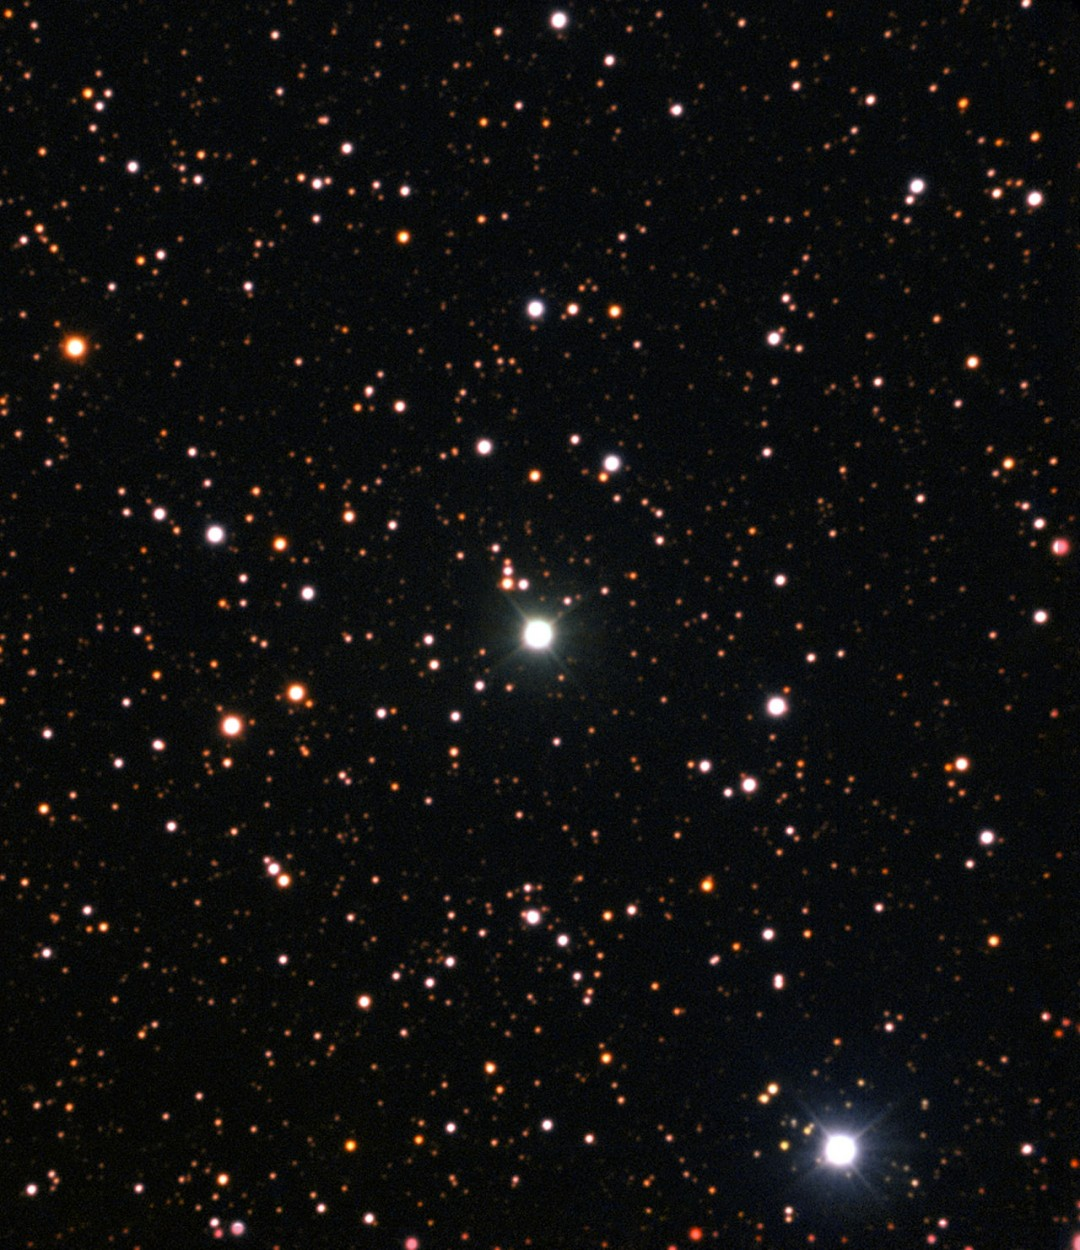 http://www.eso.org/public/images/eso1531a/